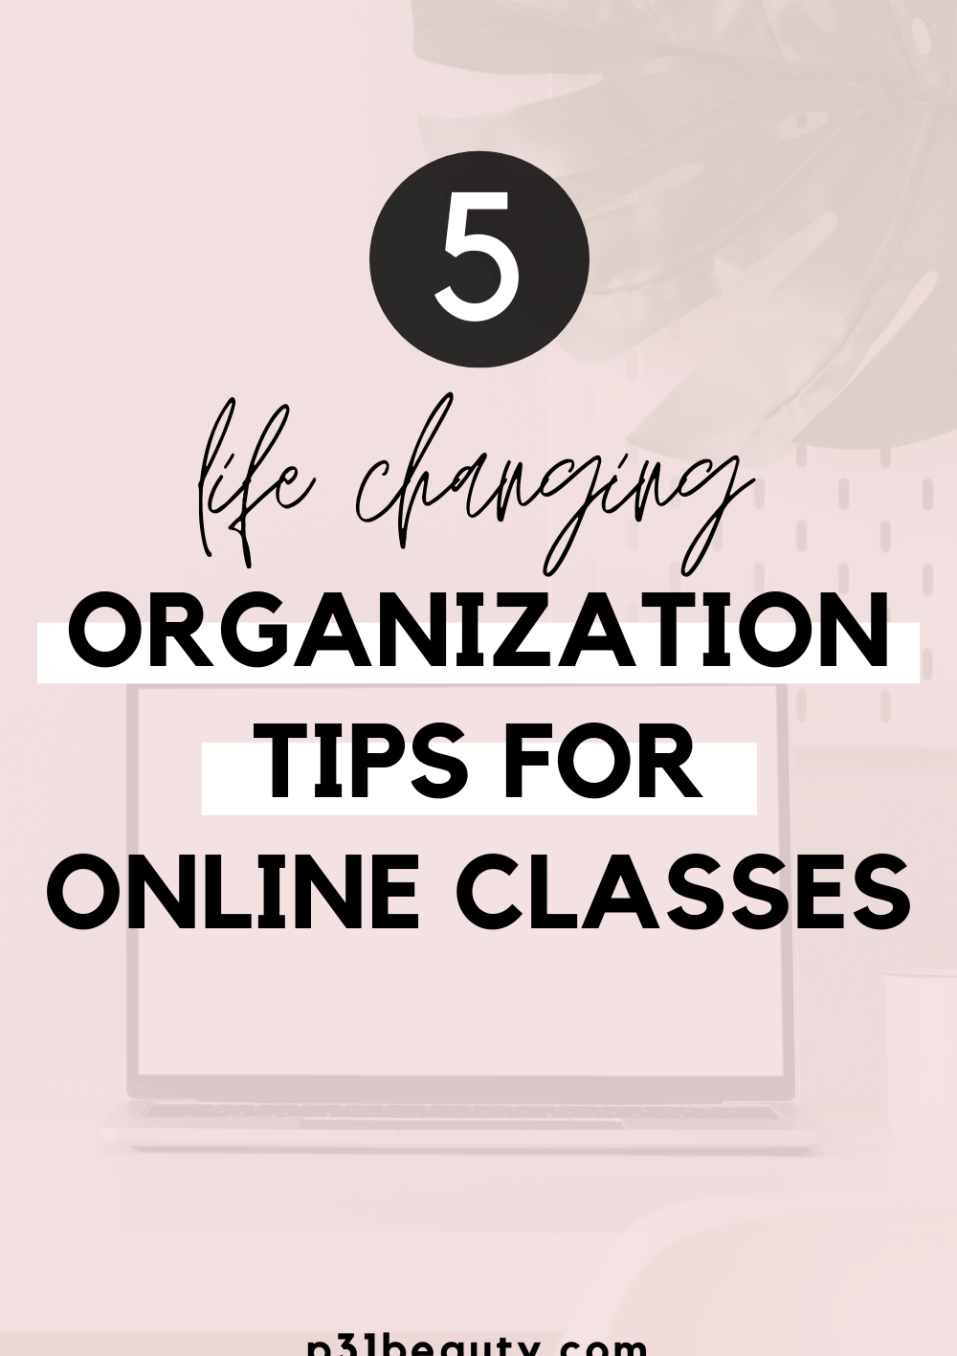 5 Life-Changing Organization Tips for Online Classes (Free 2020 Calendar Templates!)